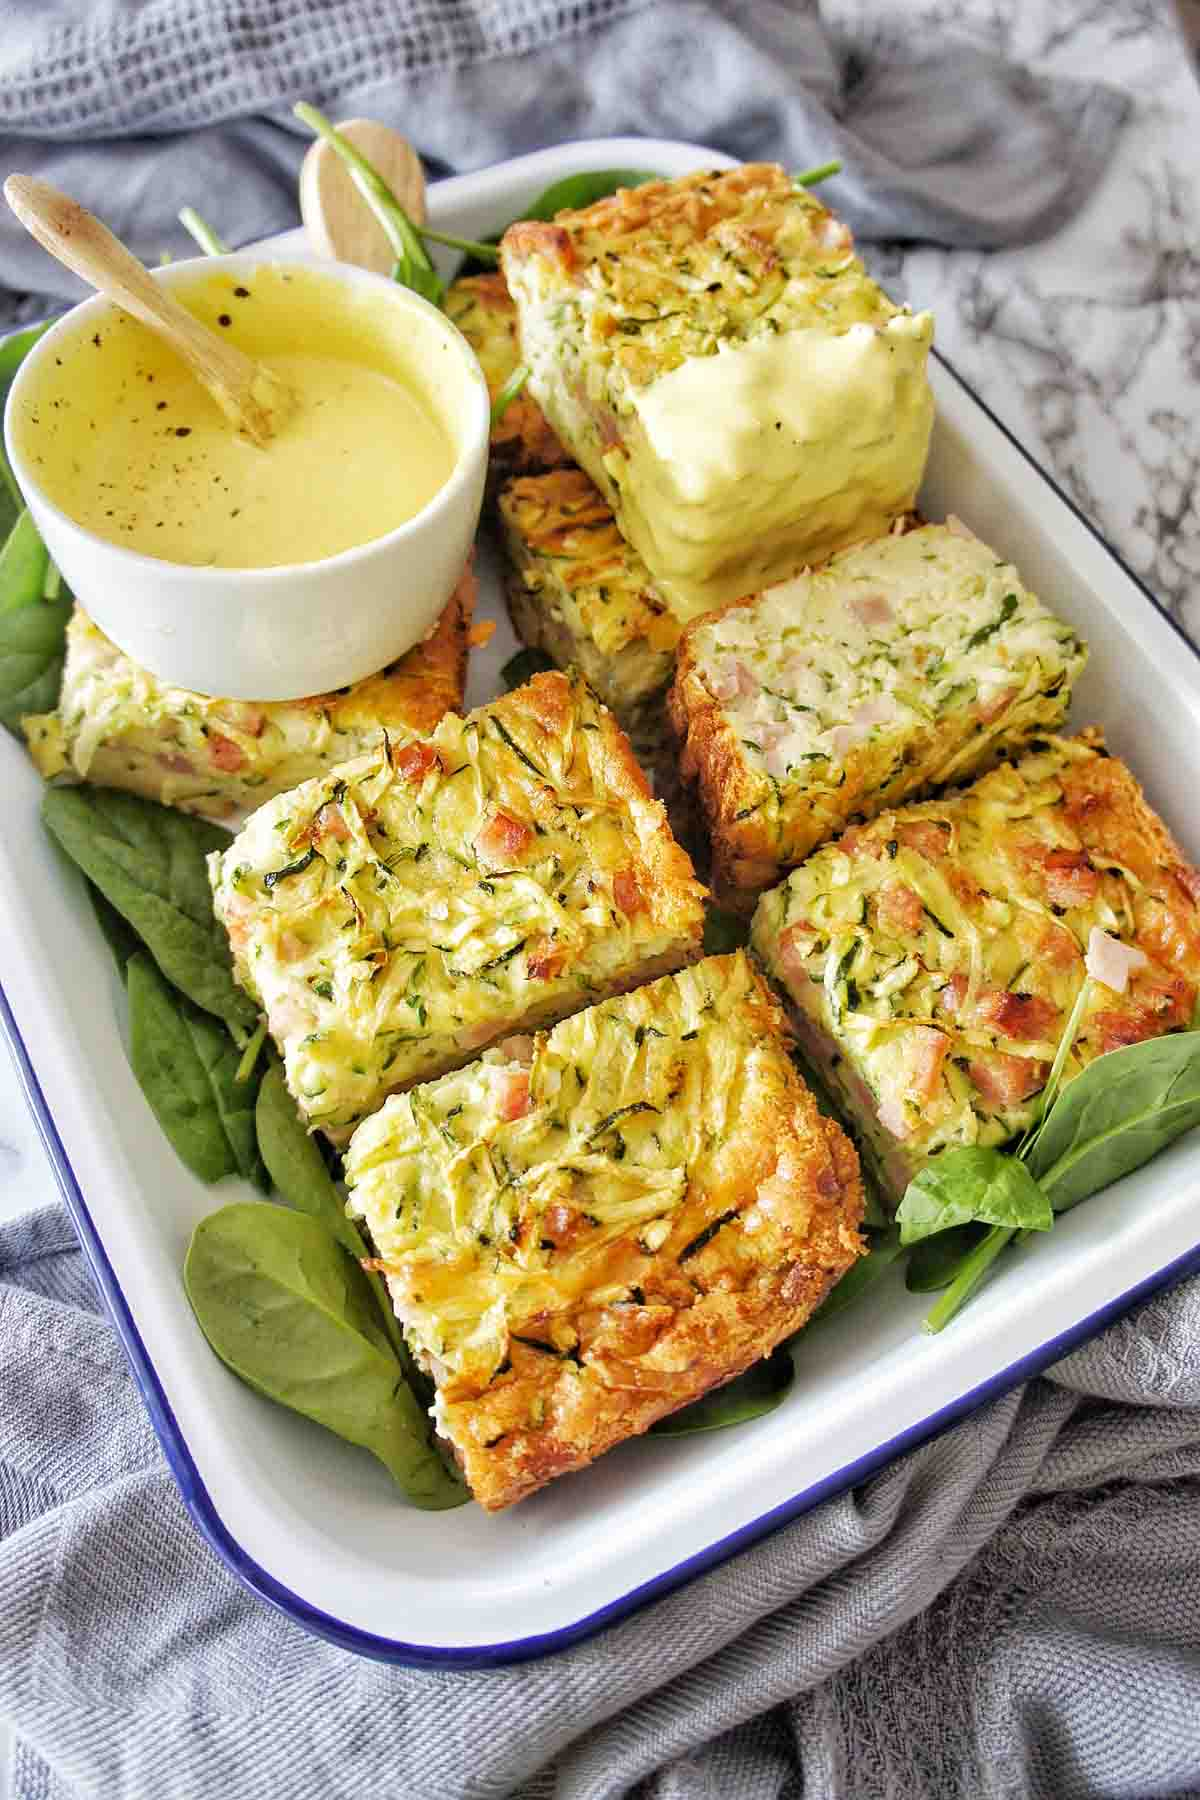 Zucchini Slice cut into pieces in a white tray with yellow sauce